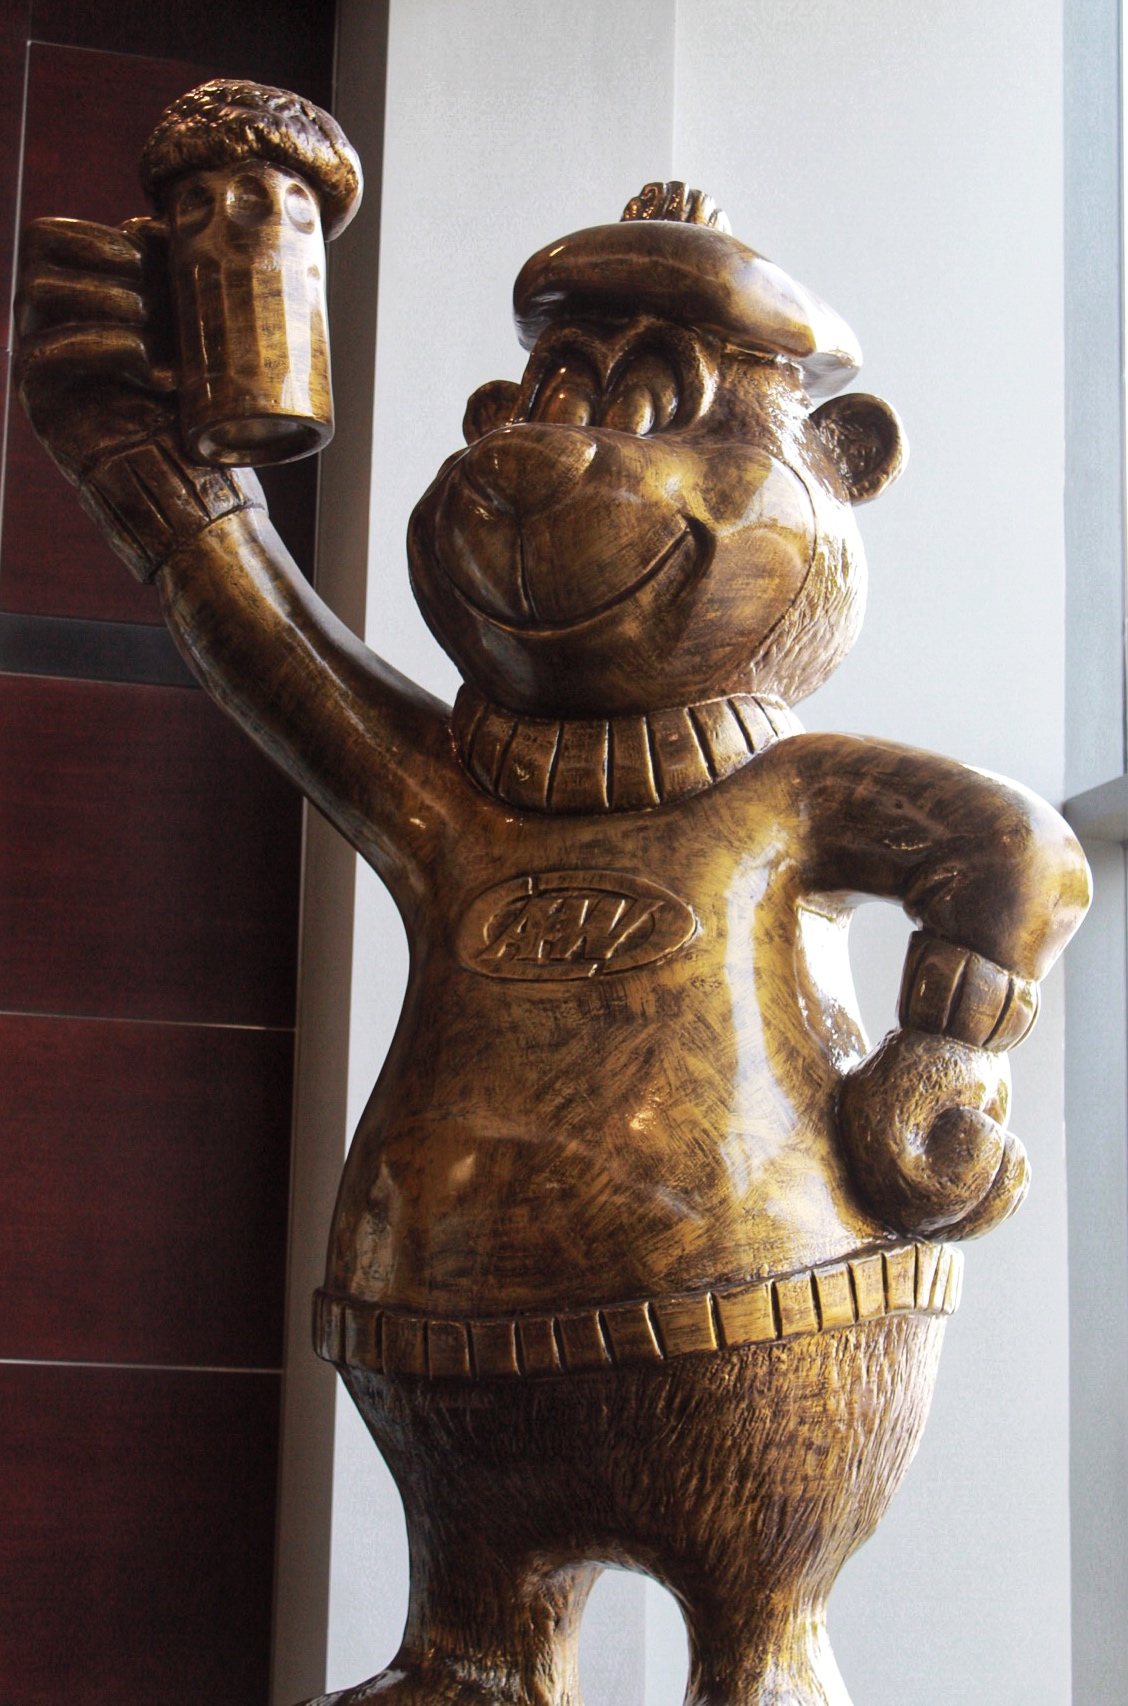 Gold statue of Rooty the Great Root Bear